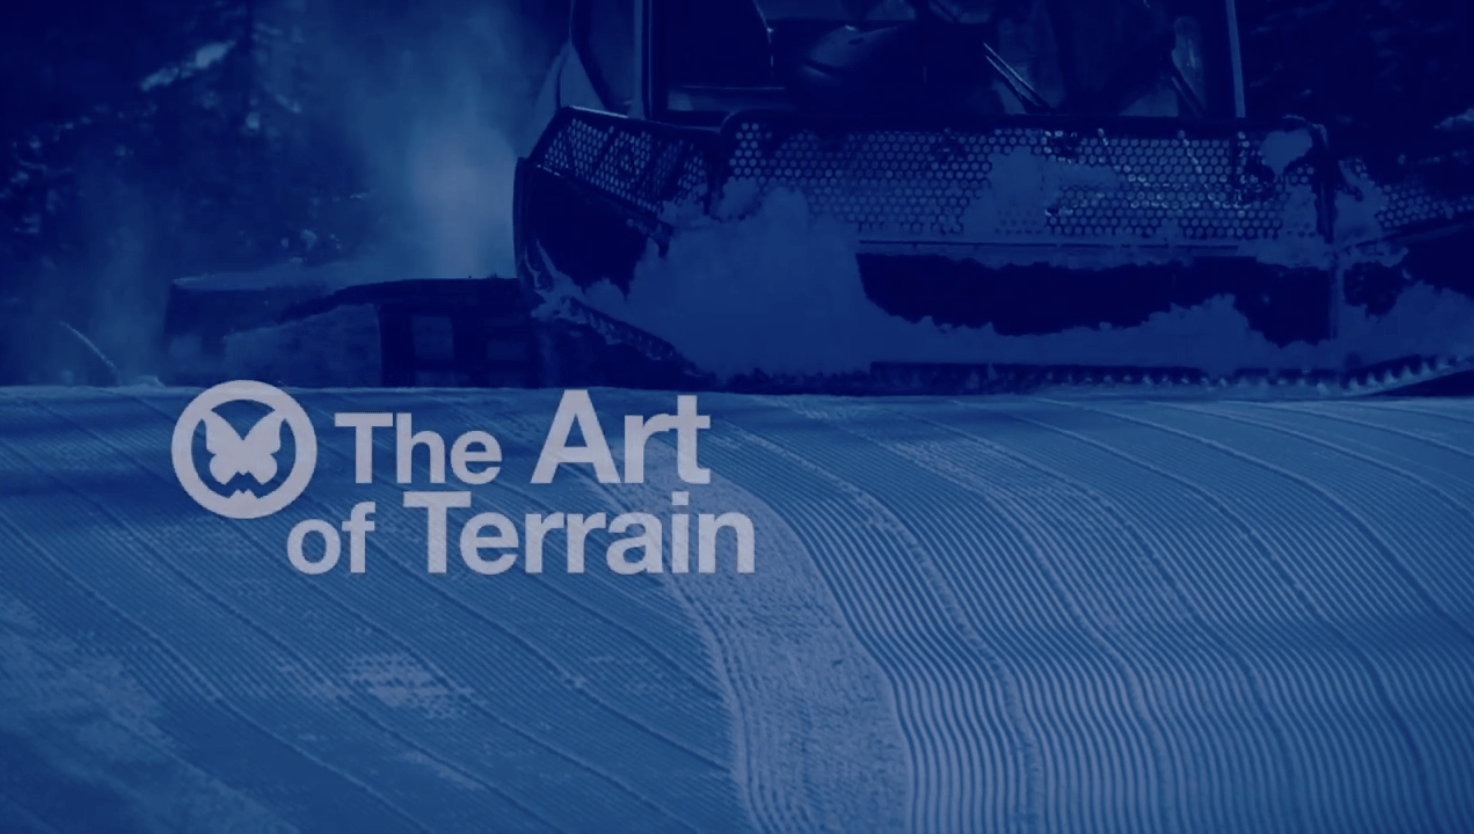 the art of terrain